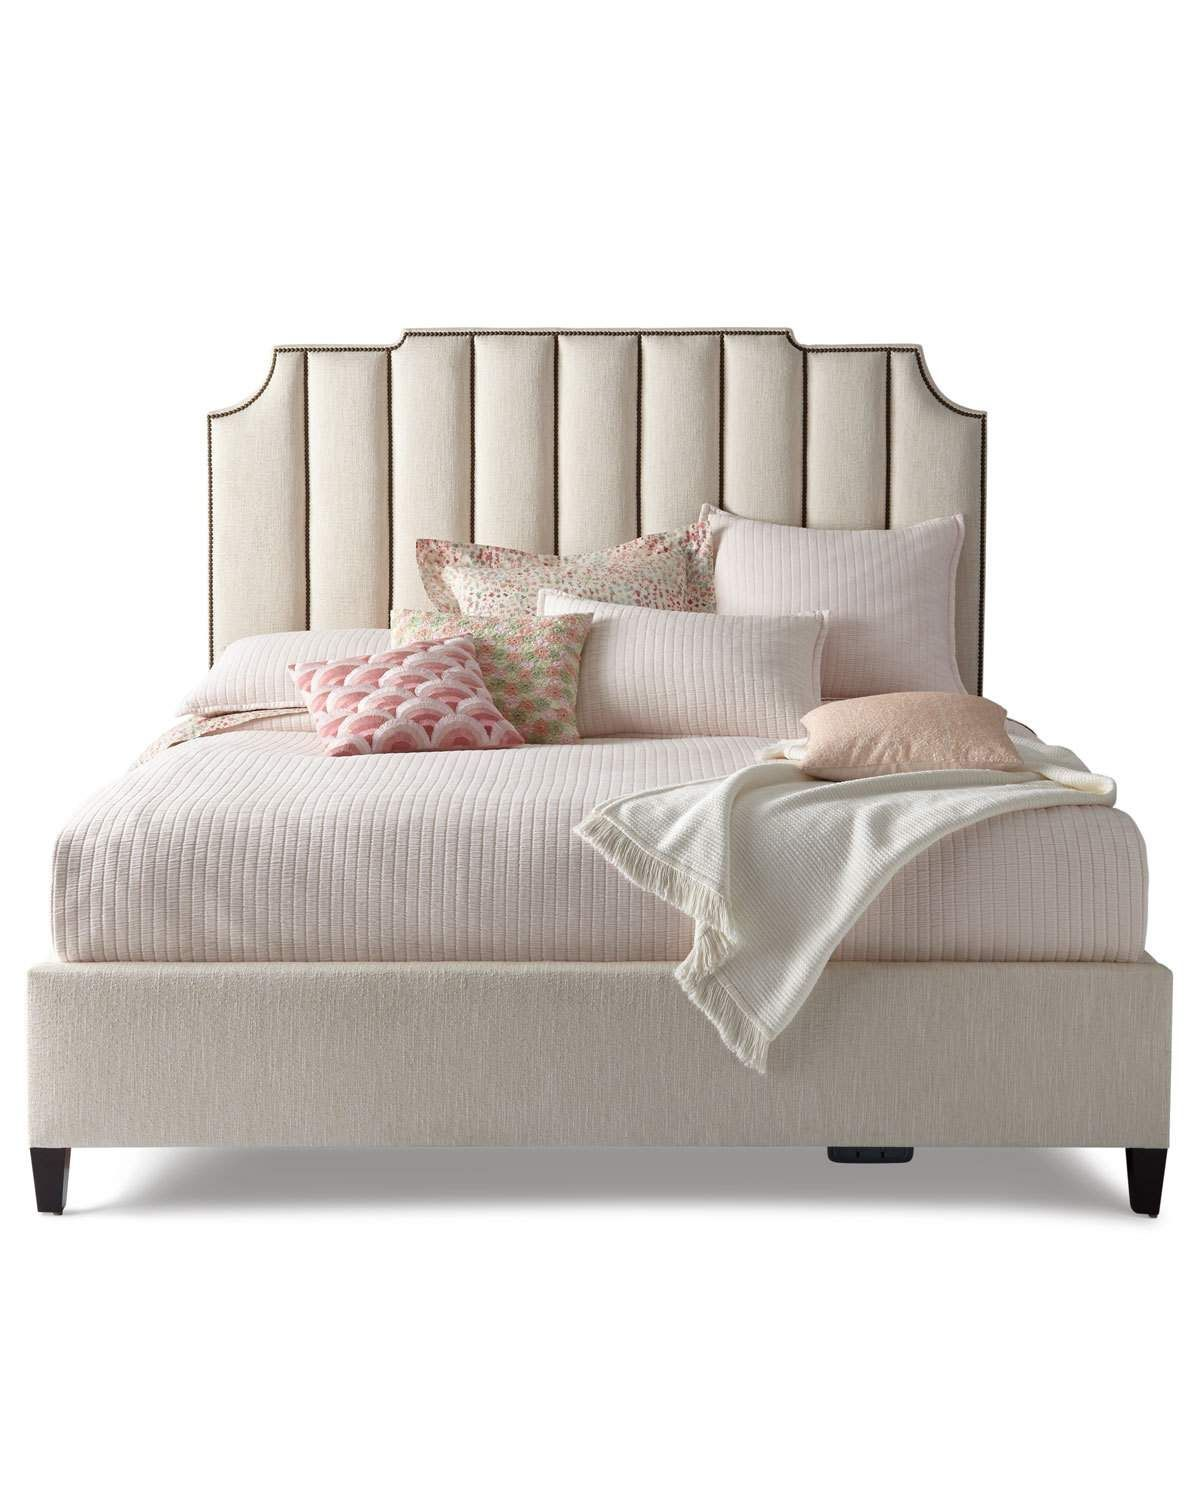 Terrific Bernhardt Bayonne Channel Tufted King Bed Products In 2019 Home Interior And Landscaping Analalmasignezvosmurscom